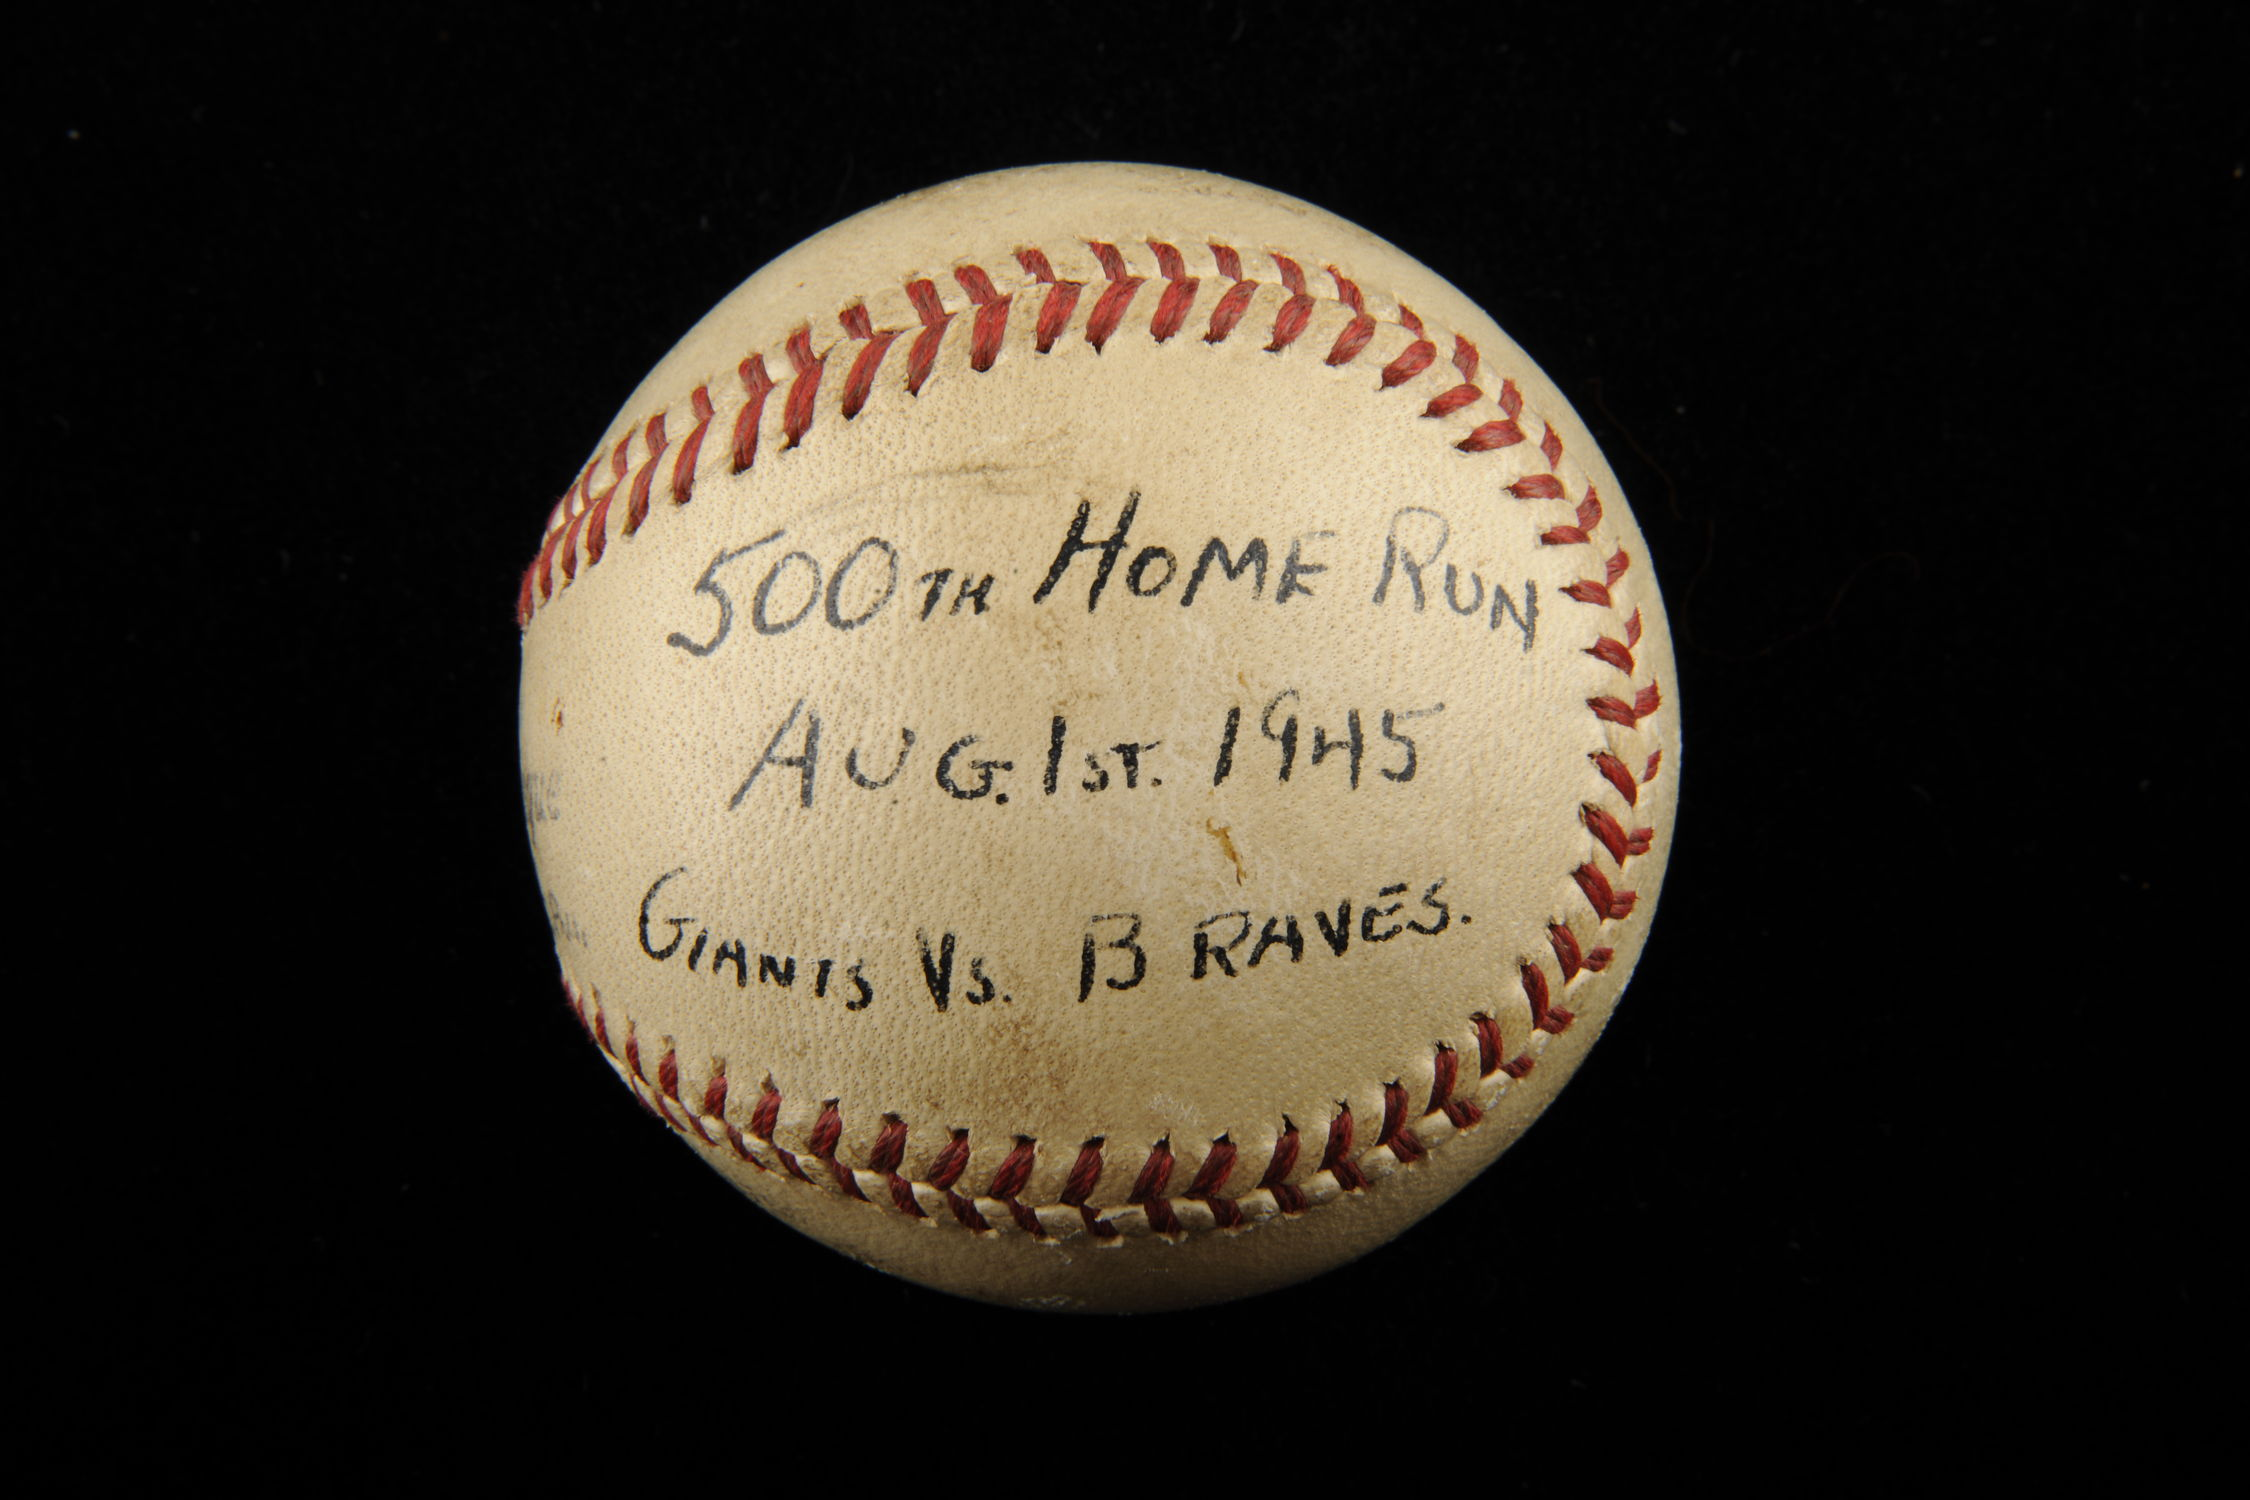 Ball hit by Mel Ott of the New York Giants for the 500th home run of his  career 20f48a0d9